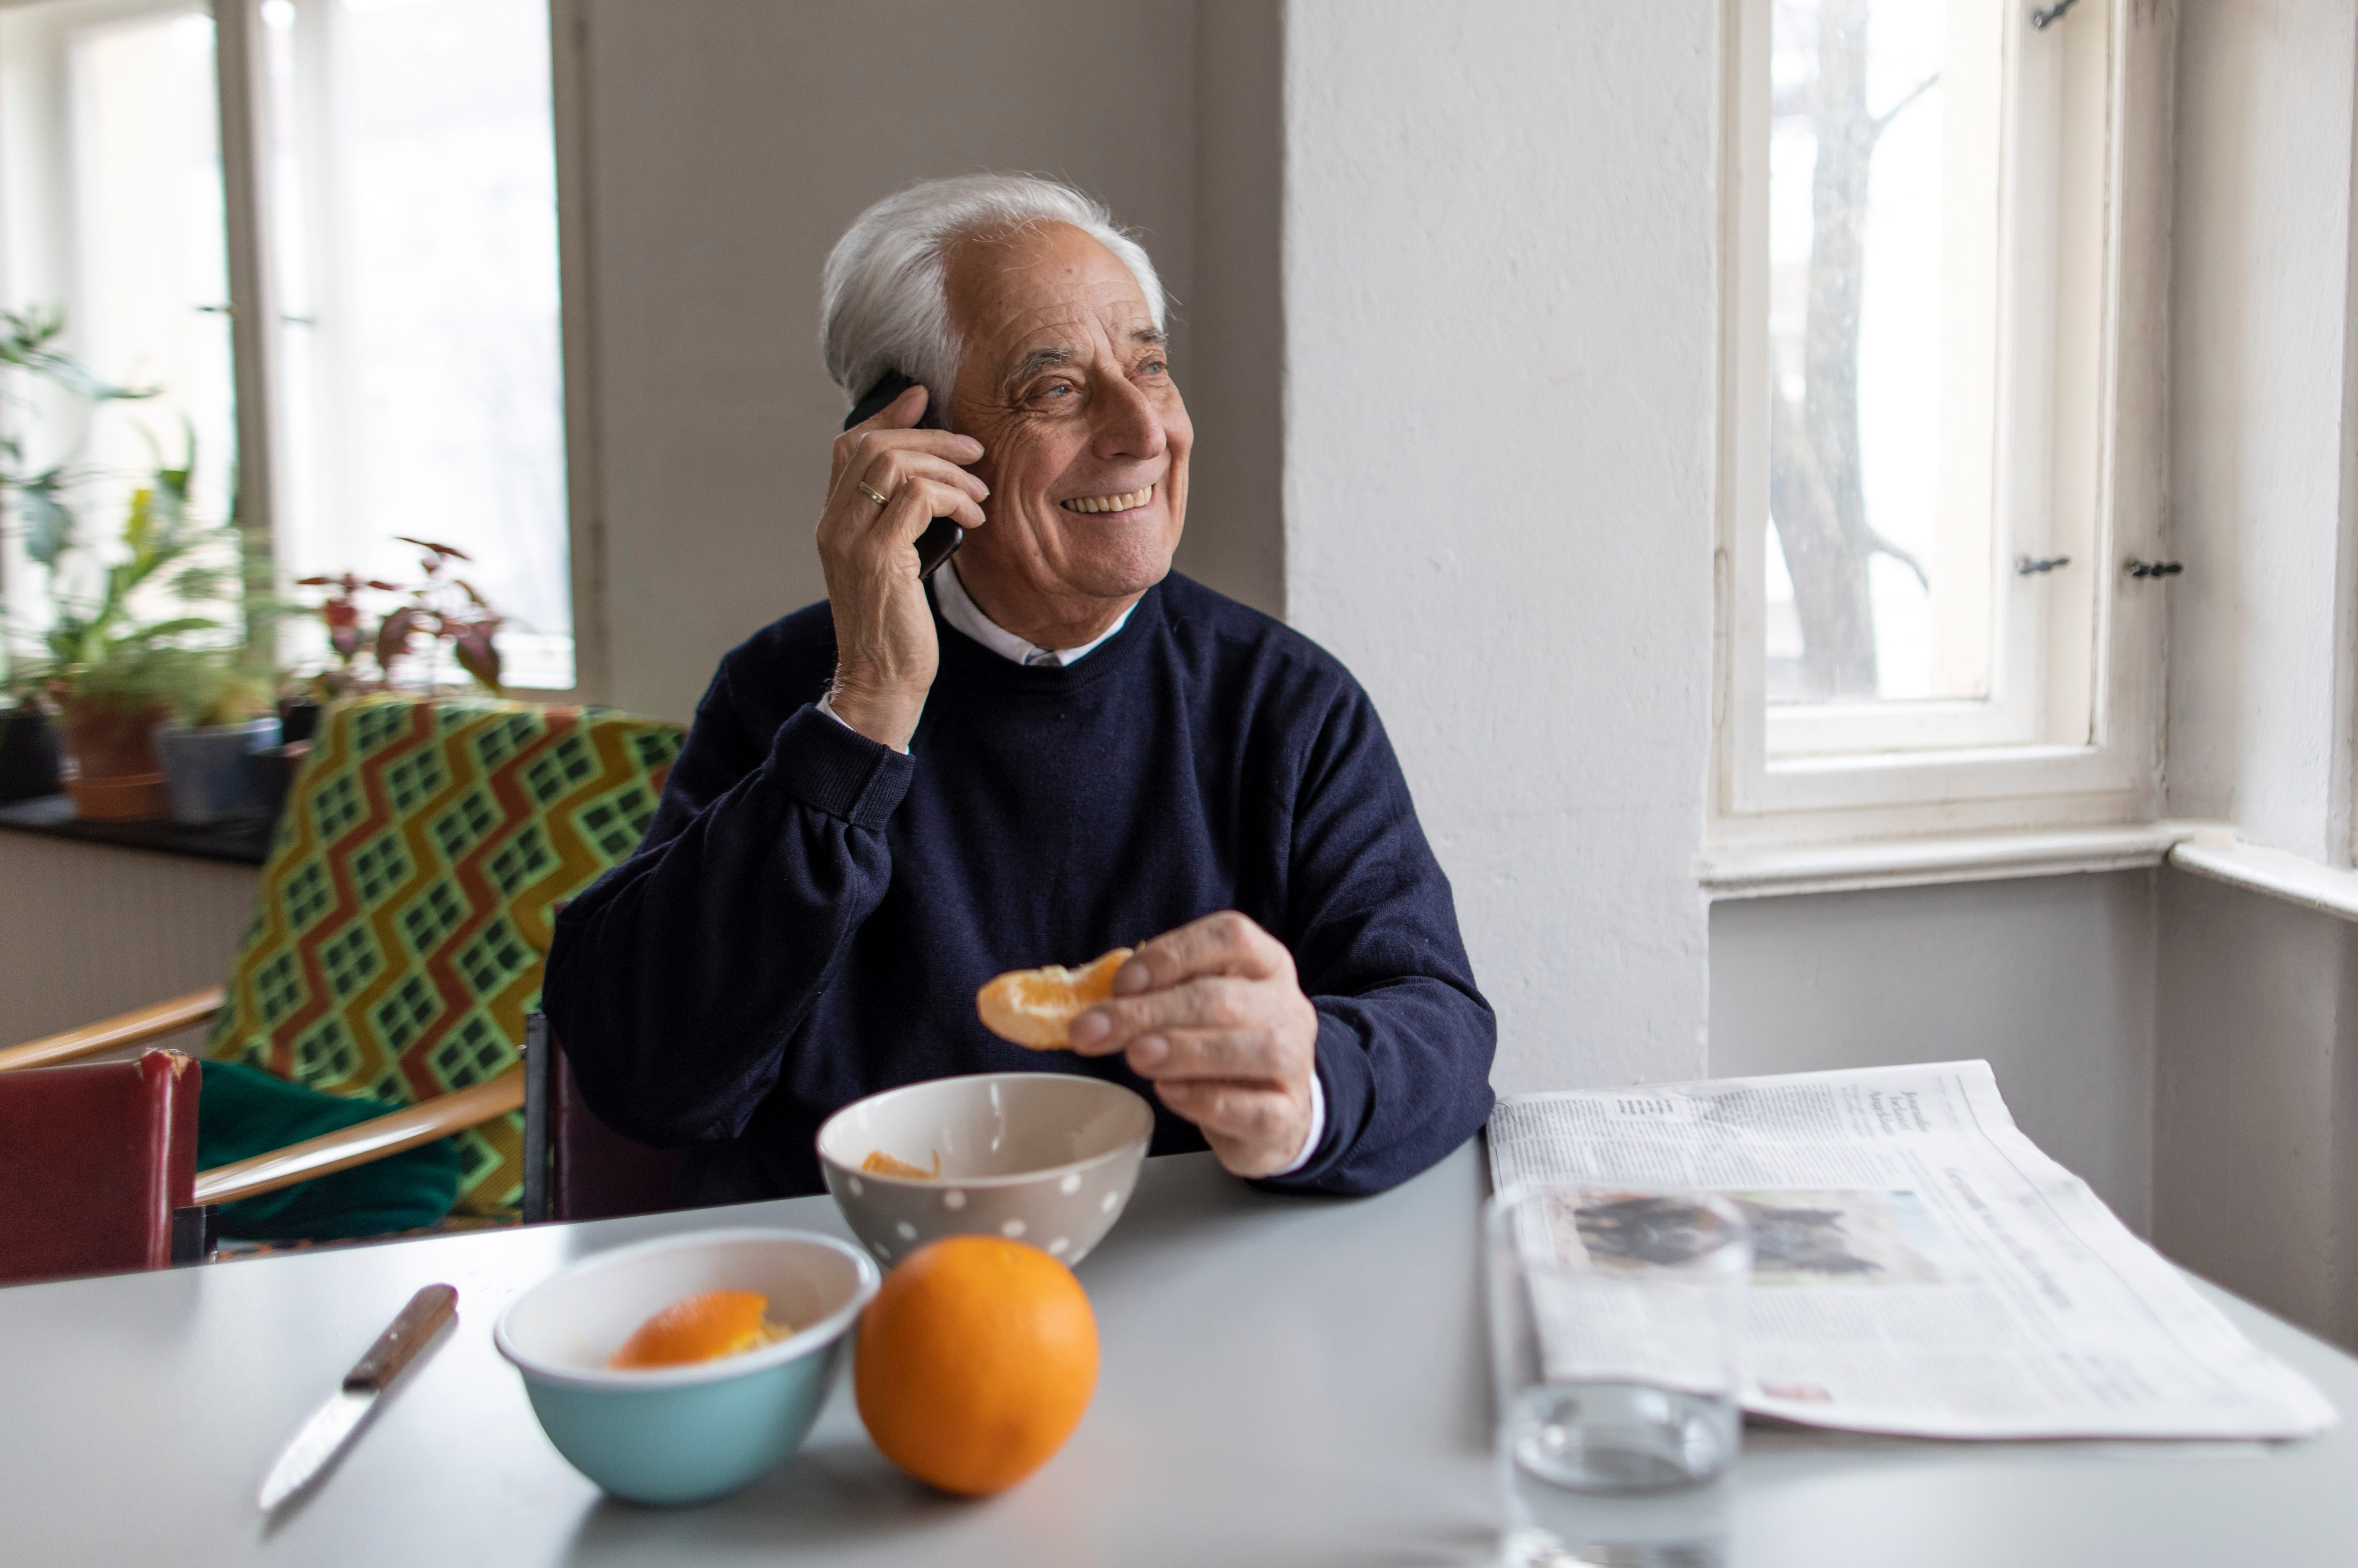 Smiling senior man on cell phone at home